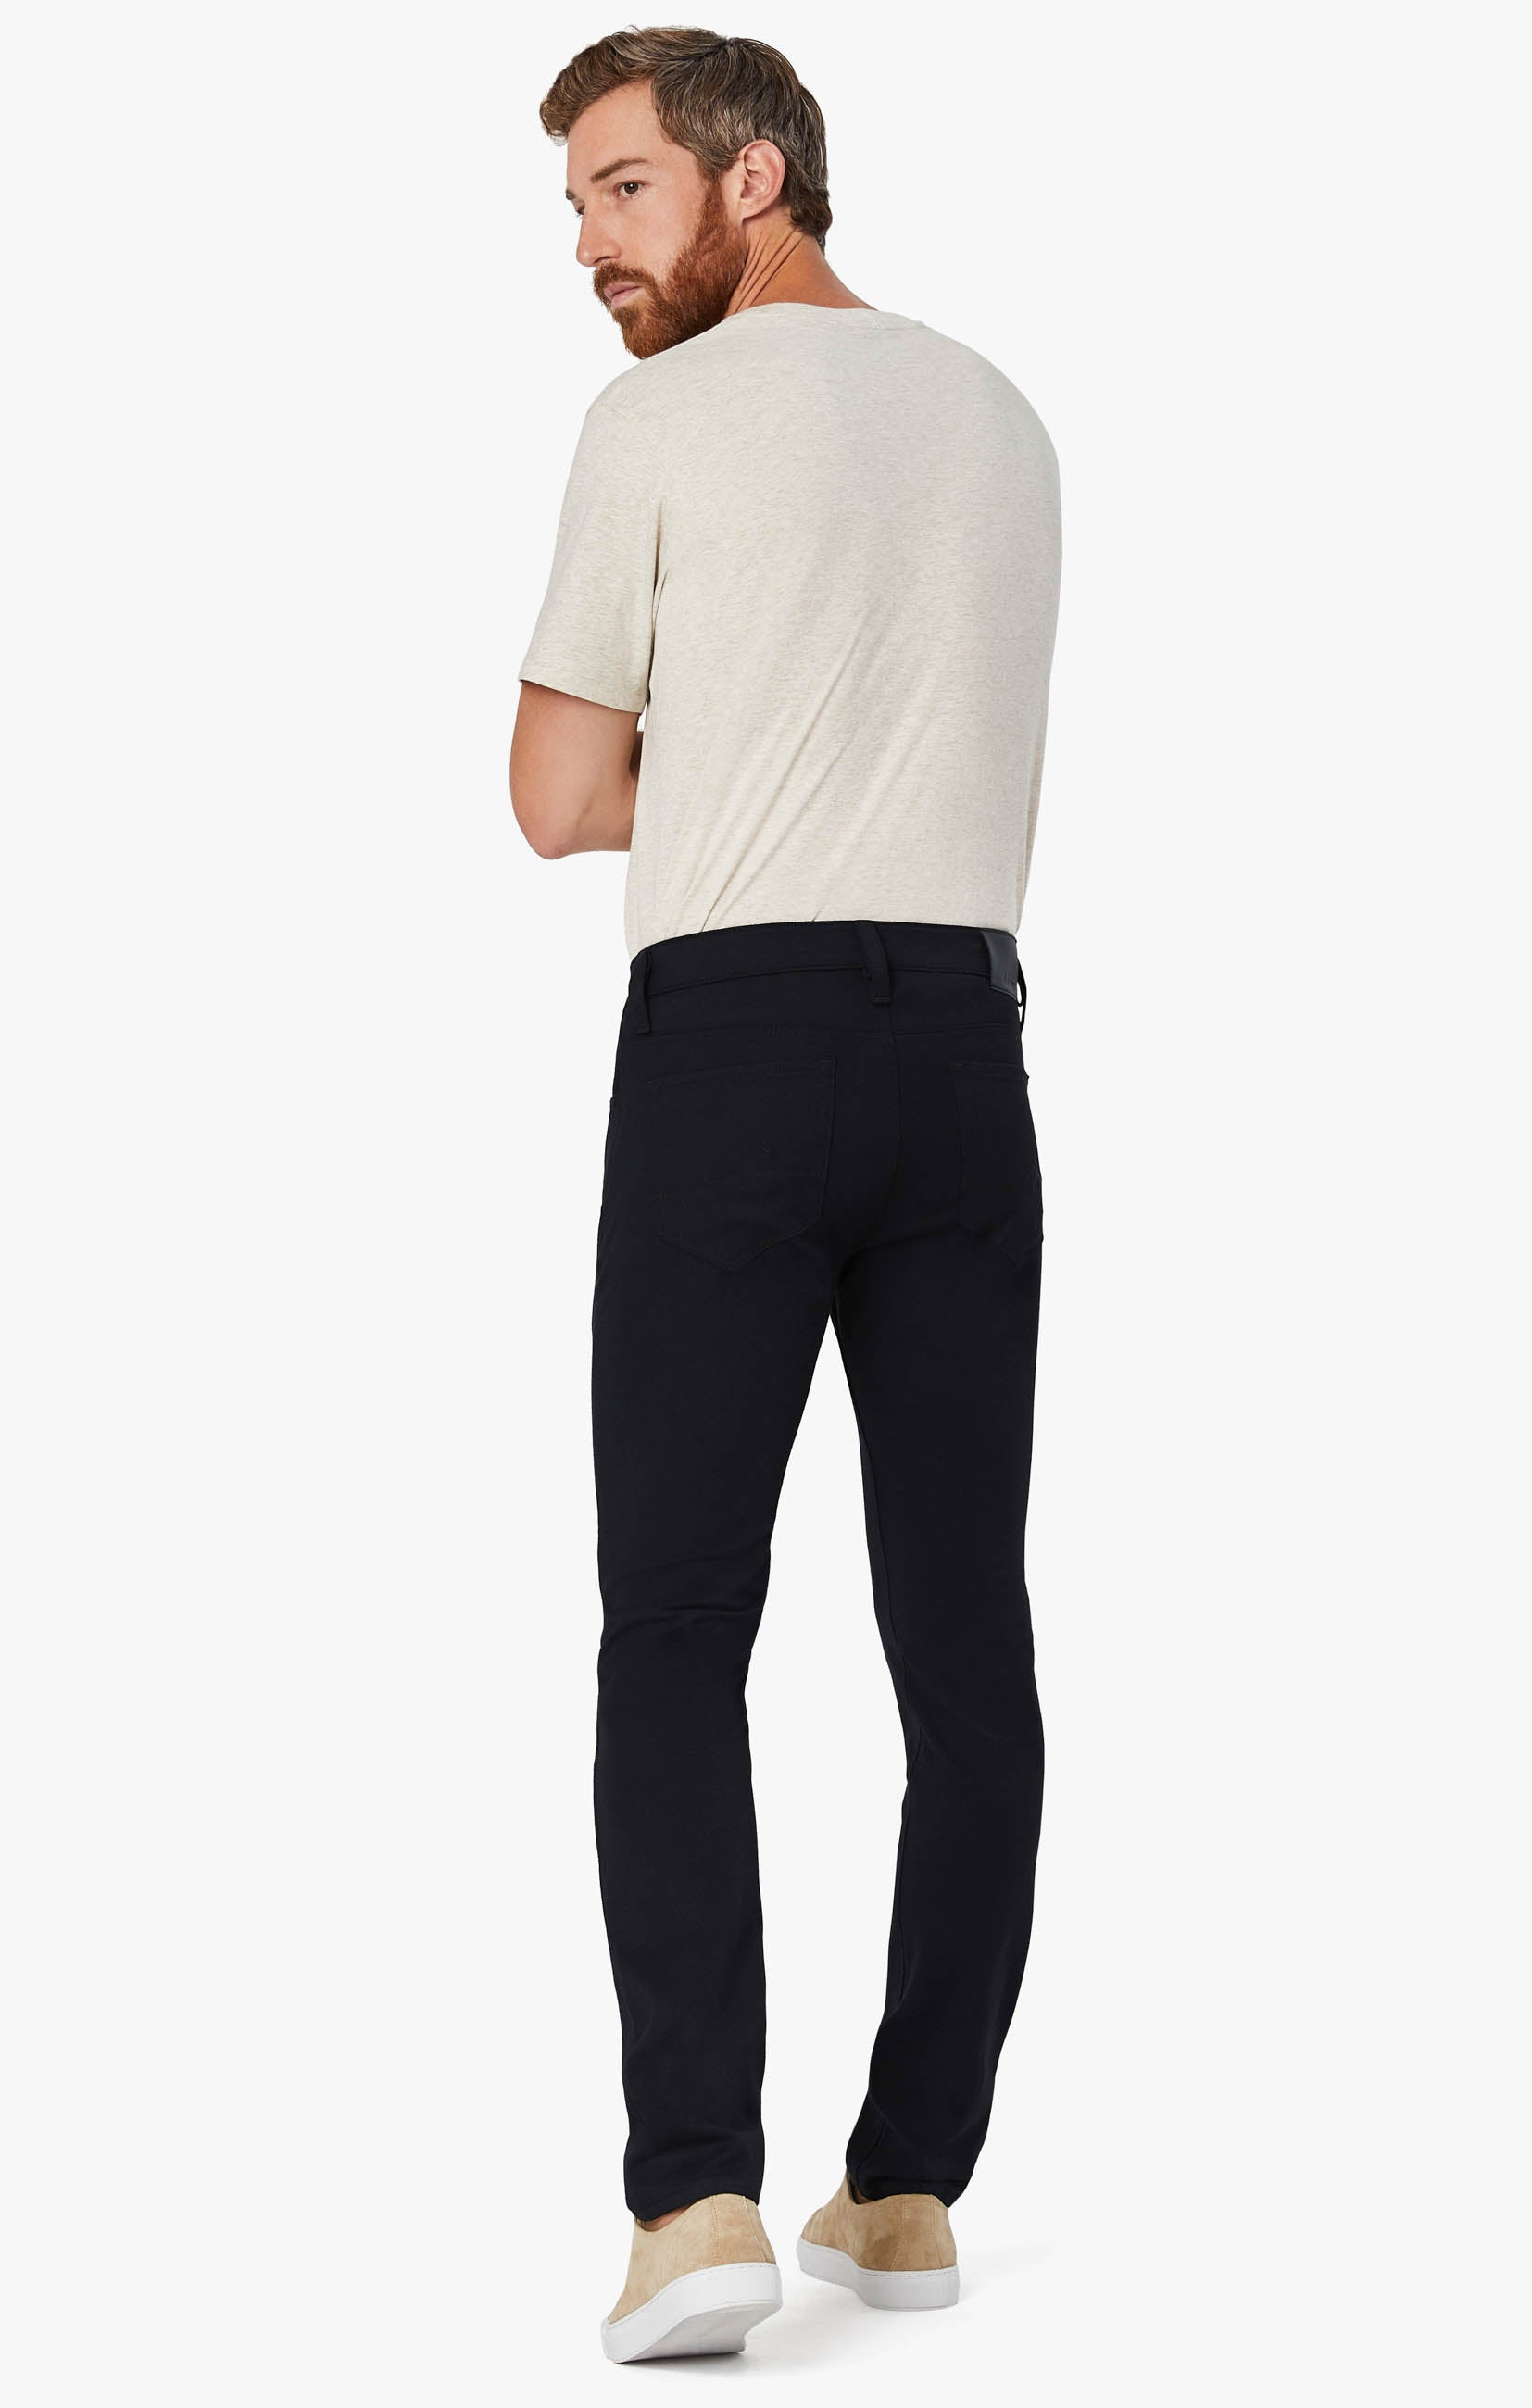 Courage Straight Leg Pants in Navy Winter Cashmere Image 3